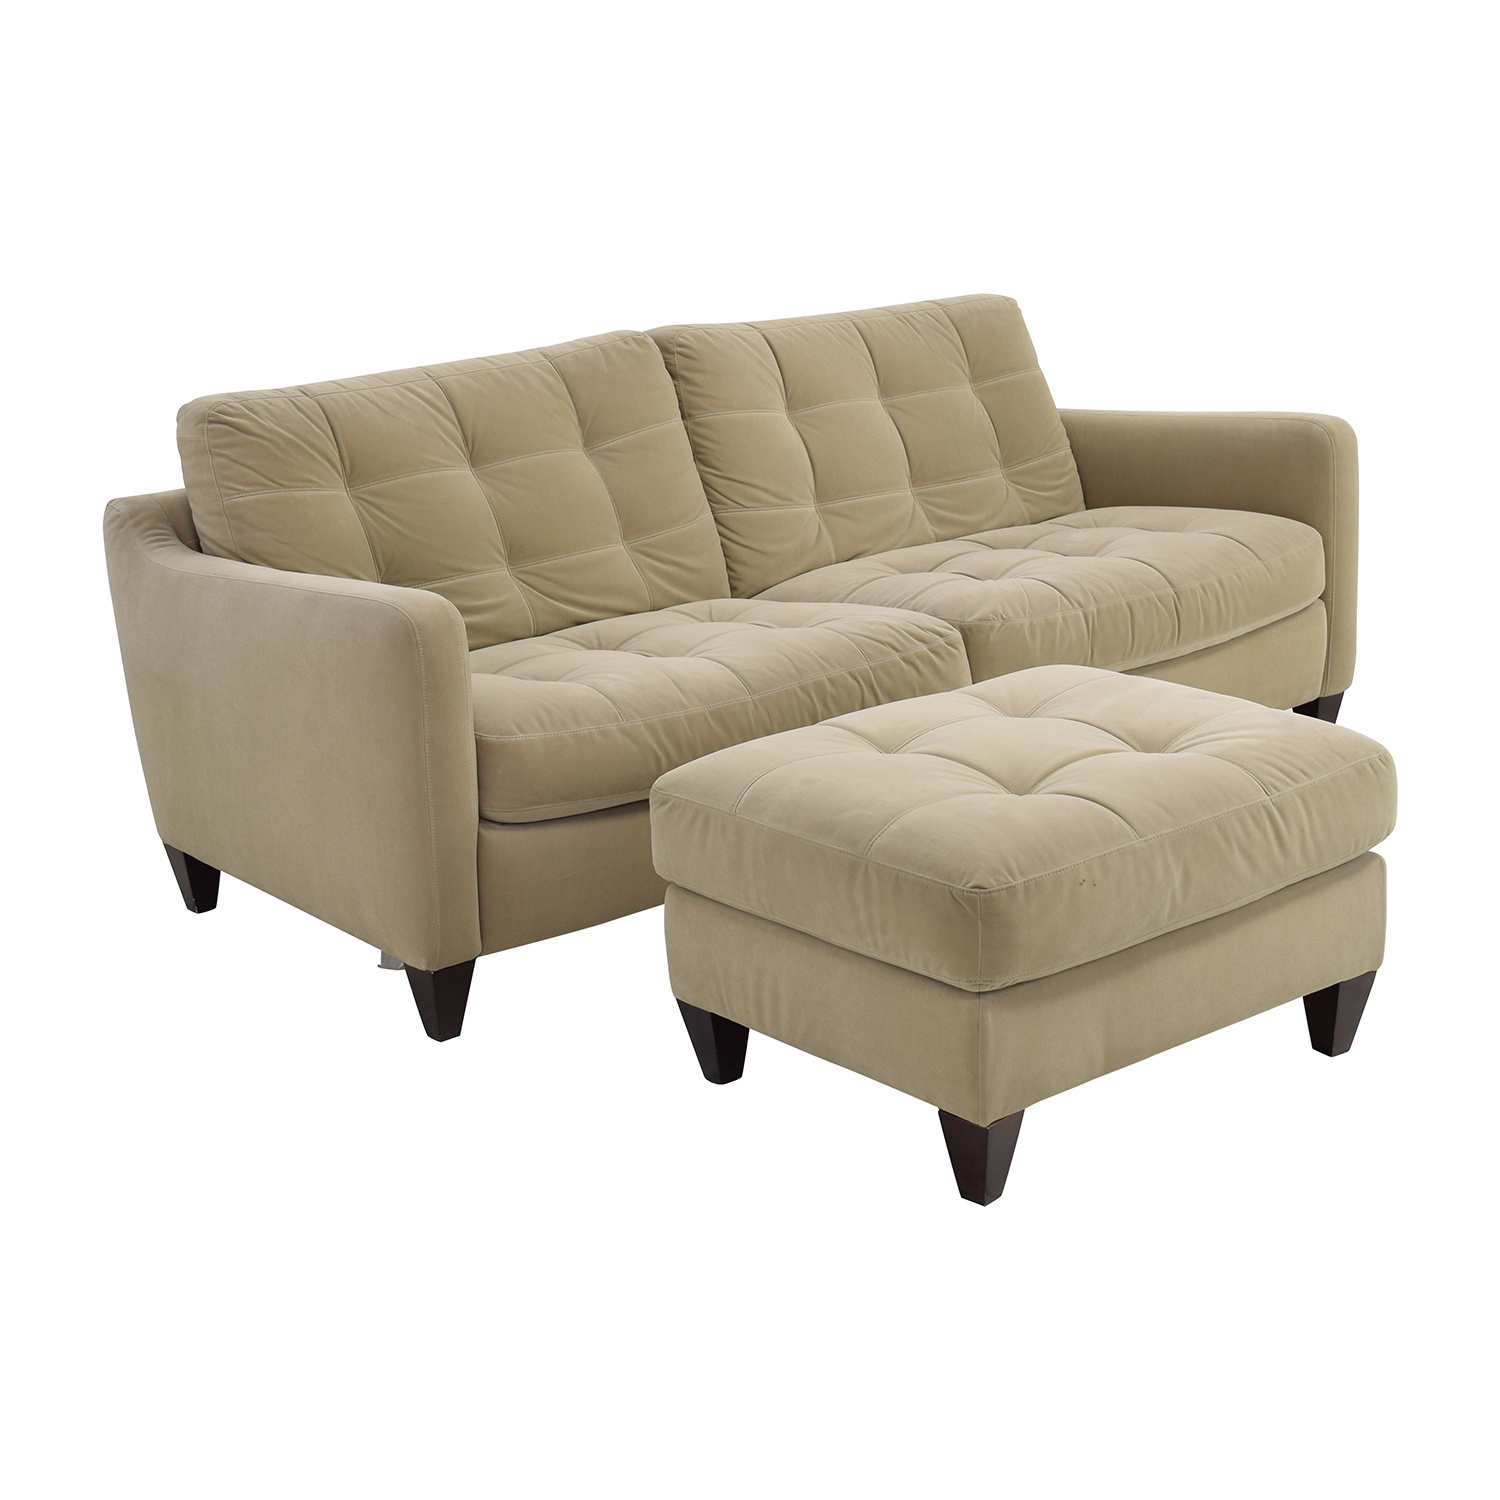 80 off natuzzi natuzzi beige microfiber tufted couch for Small tufted sofa